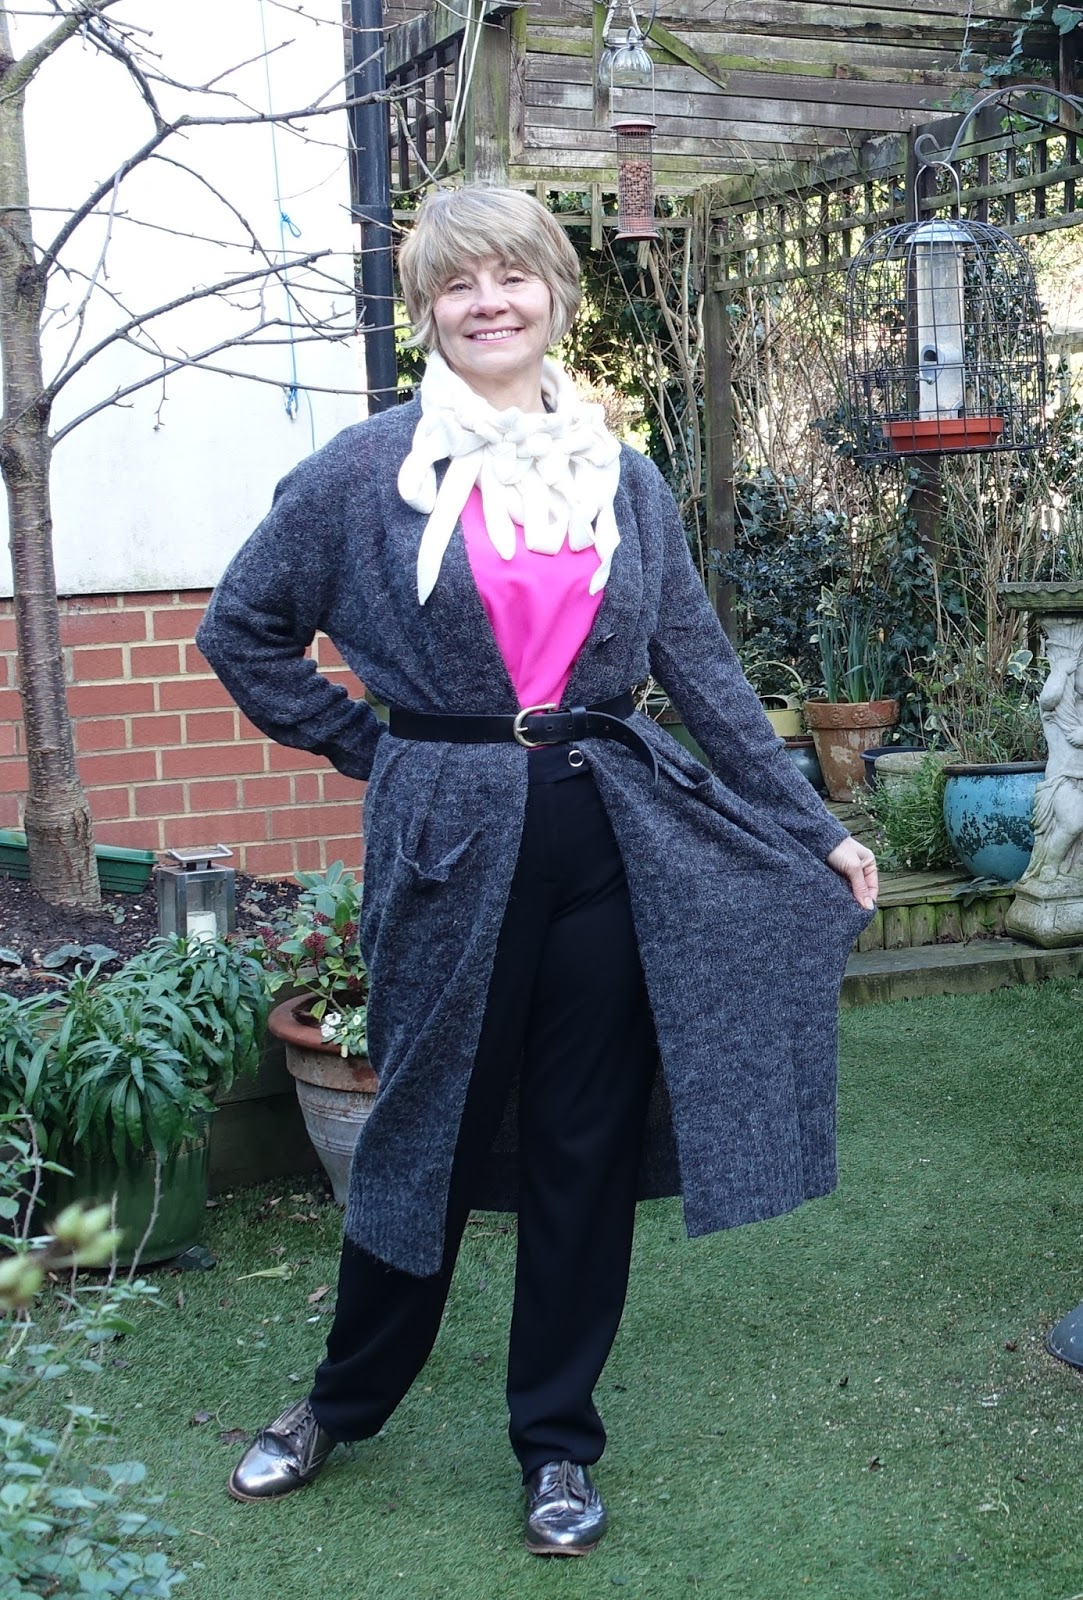 Image showing a fashion conscious middle aged woman wearing a long line knitted grey cardigan worn over black trousers and metallic brogues, with a pink top and cream fleecy neck wear.